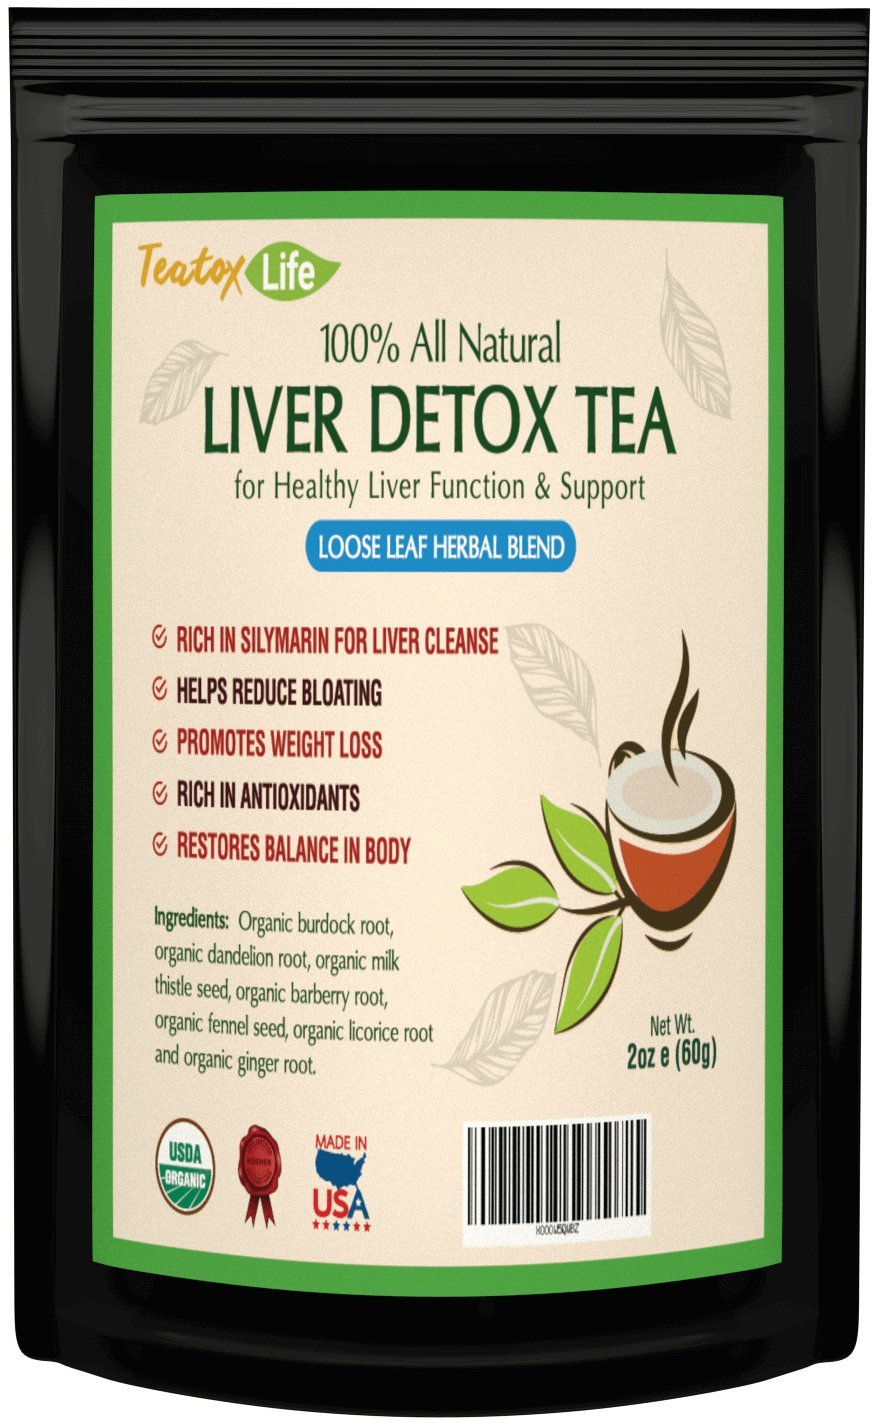 Liver Detox tea with burdock root, dandelion for liver cleanse, detoxifier & regenerator with milk thistle - 60 gms | Made in USA| USDA Certified